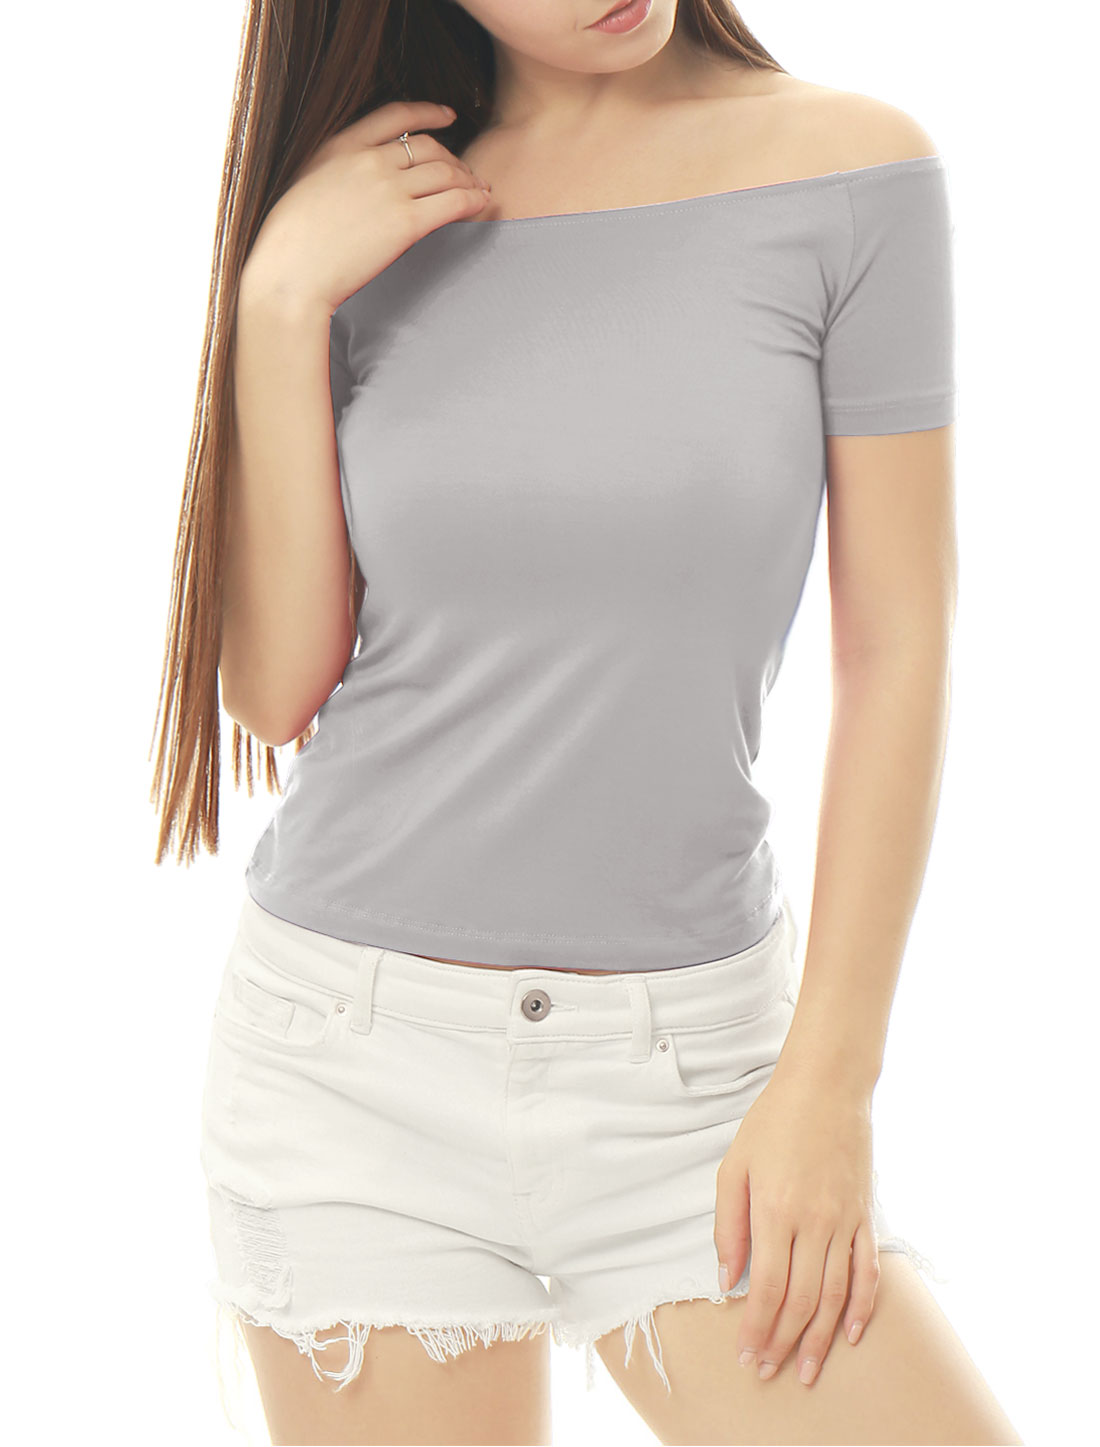 Women Short Sleeves Slim Fit Off the Shoulder Top Gray XS